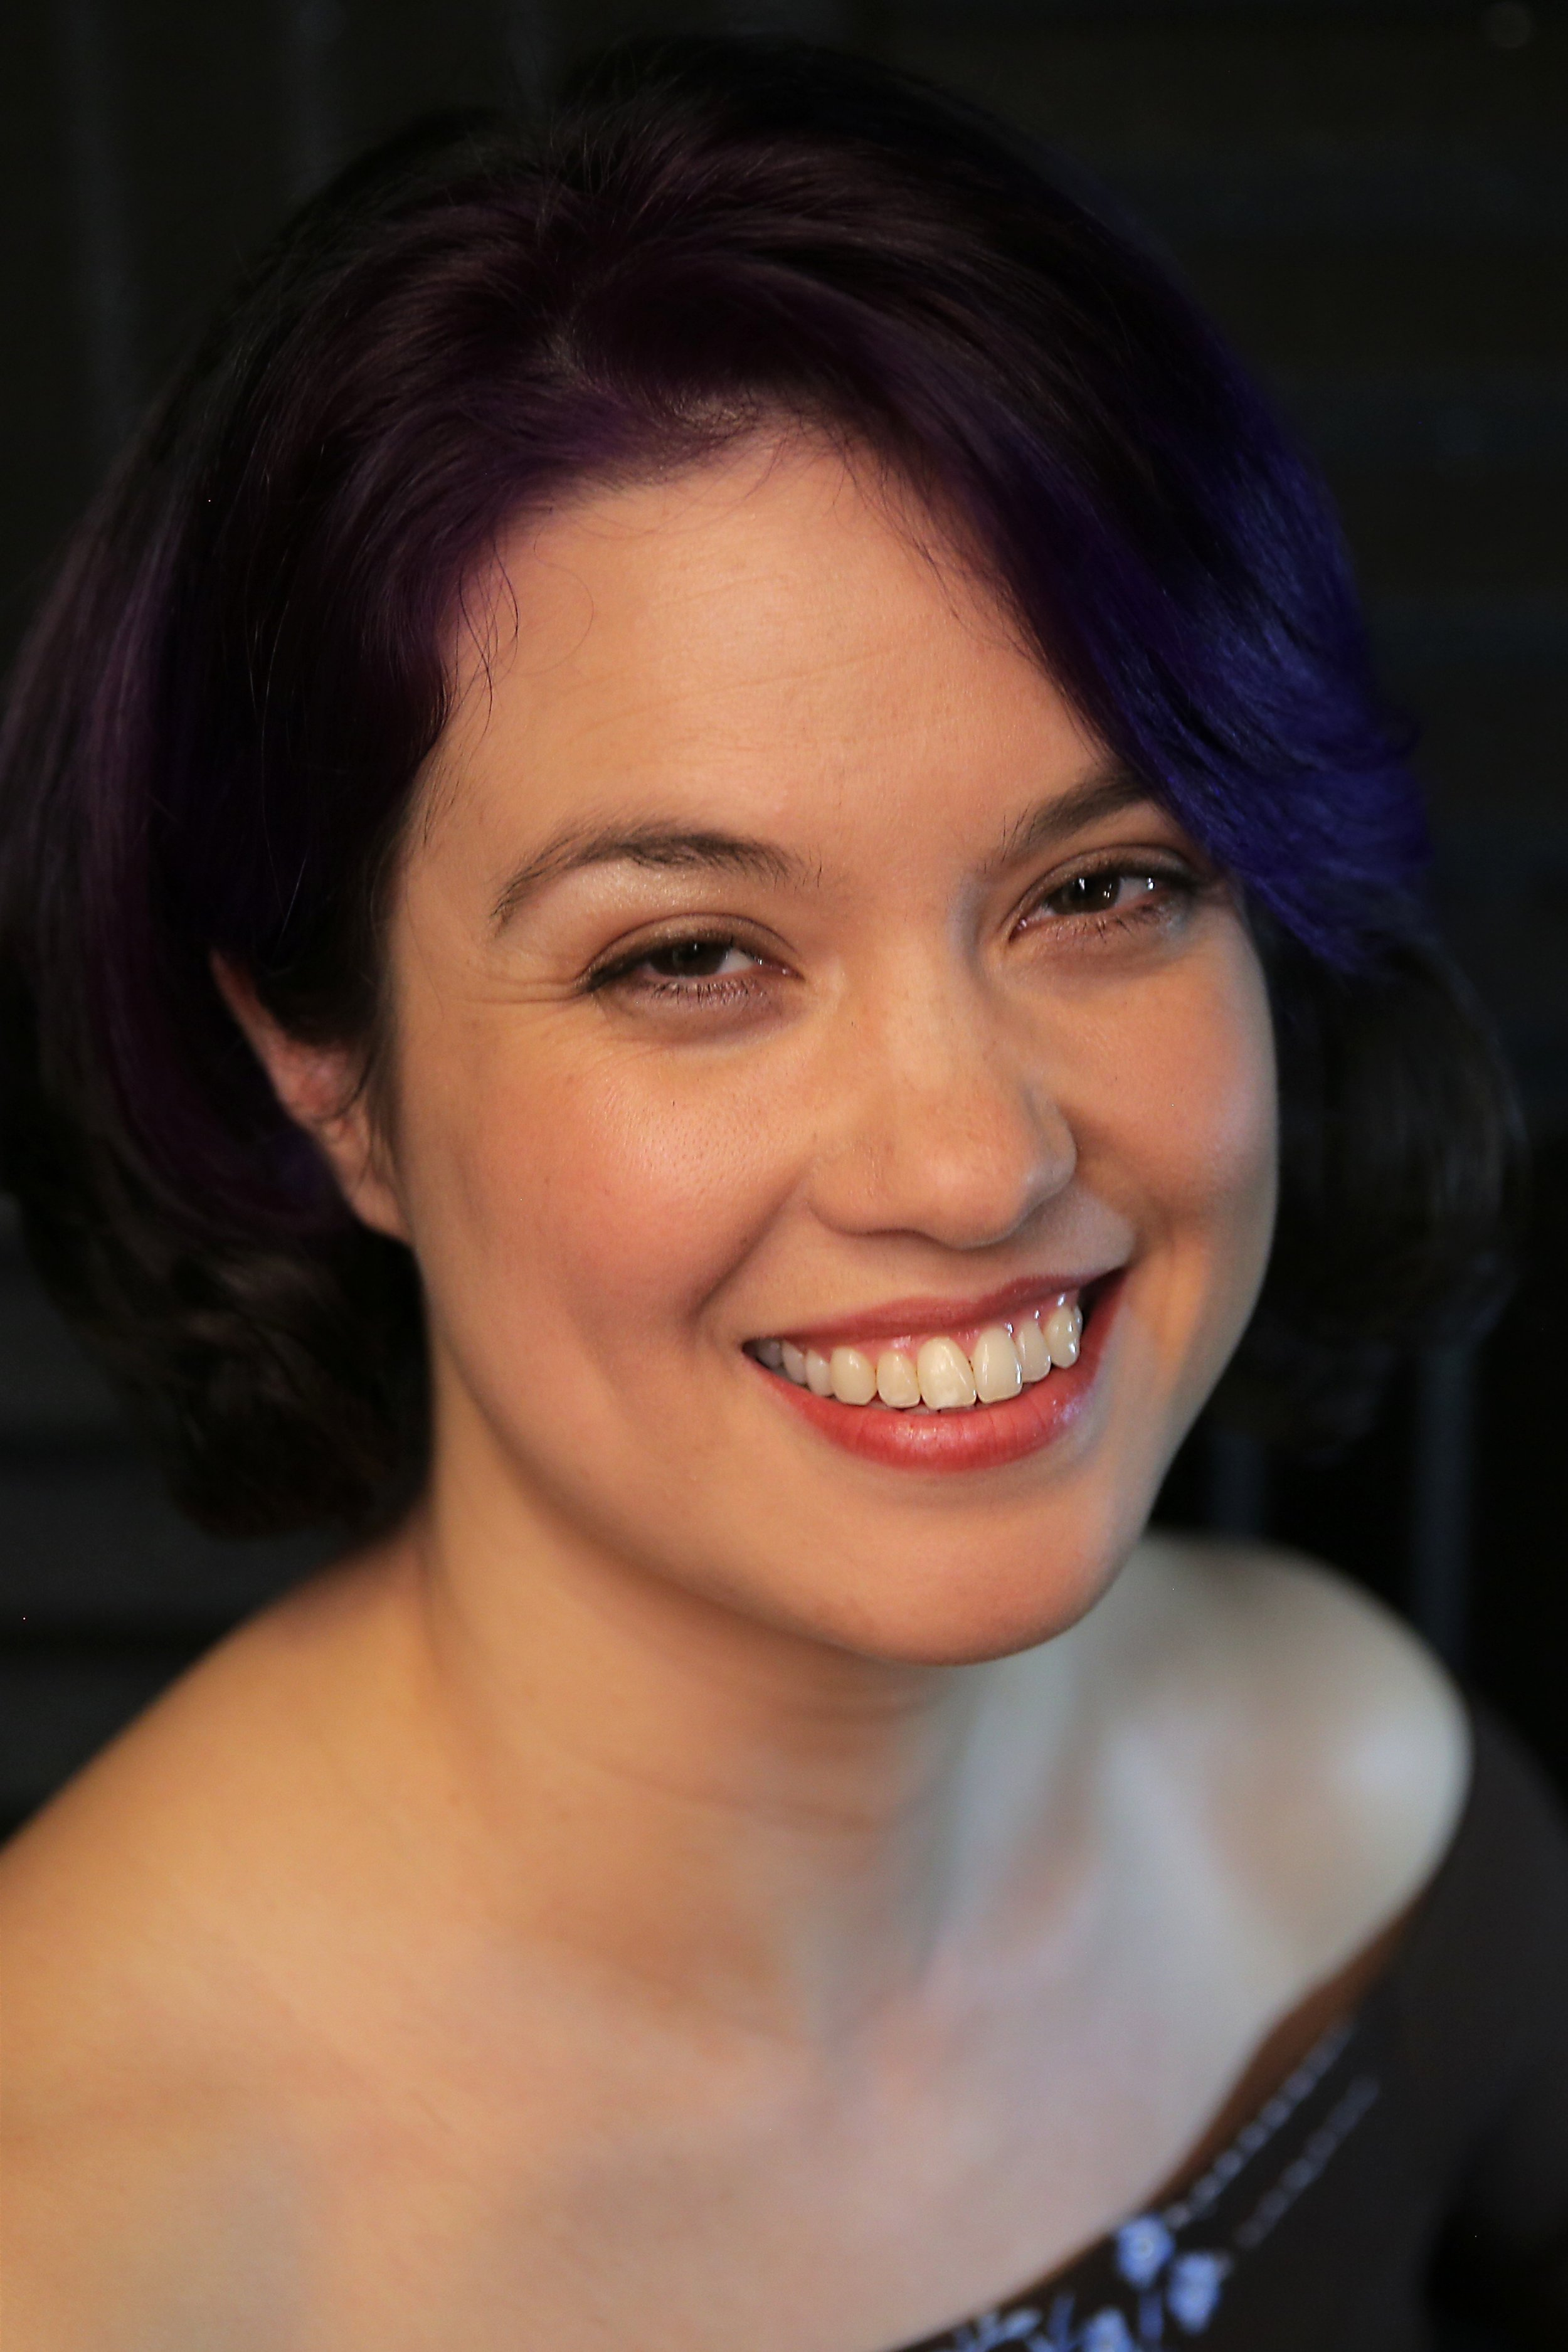 Let's Hear it for the Audiobook Narrators: Featuring Emily Zeller